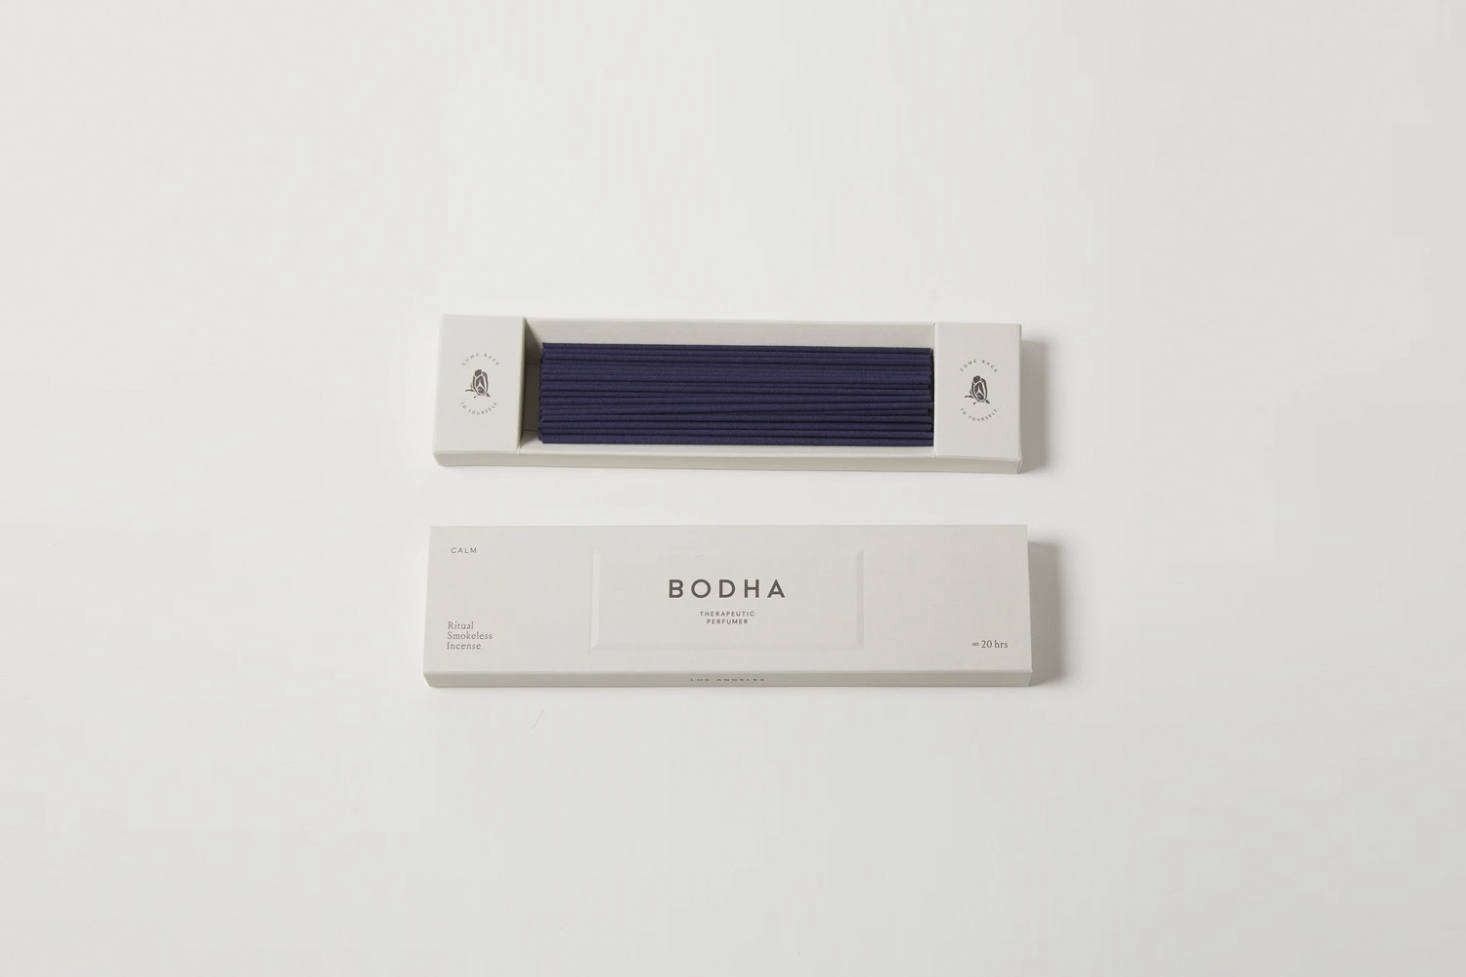 The Bodha Calm Incense has a gentle fragrance and smokeless burn. Made in Japan using traditional methods, the incense is $3